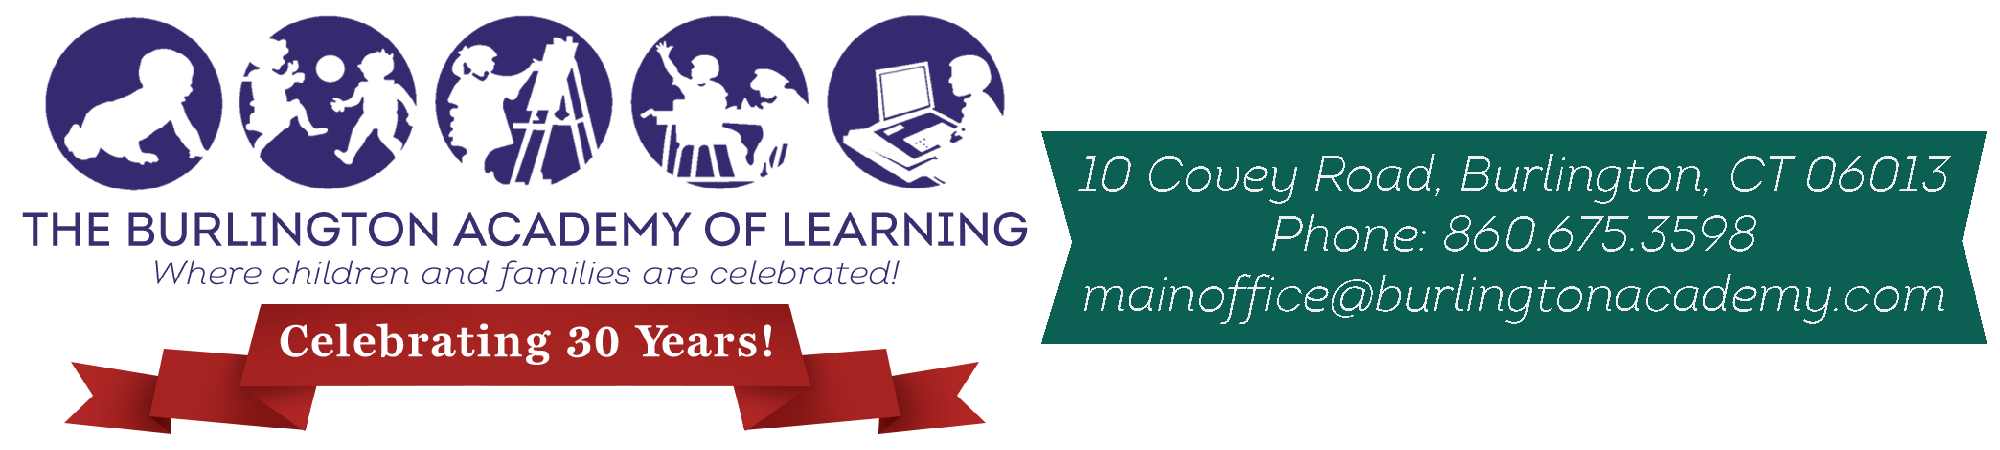 Burlington Academy of Learning Logo